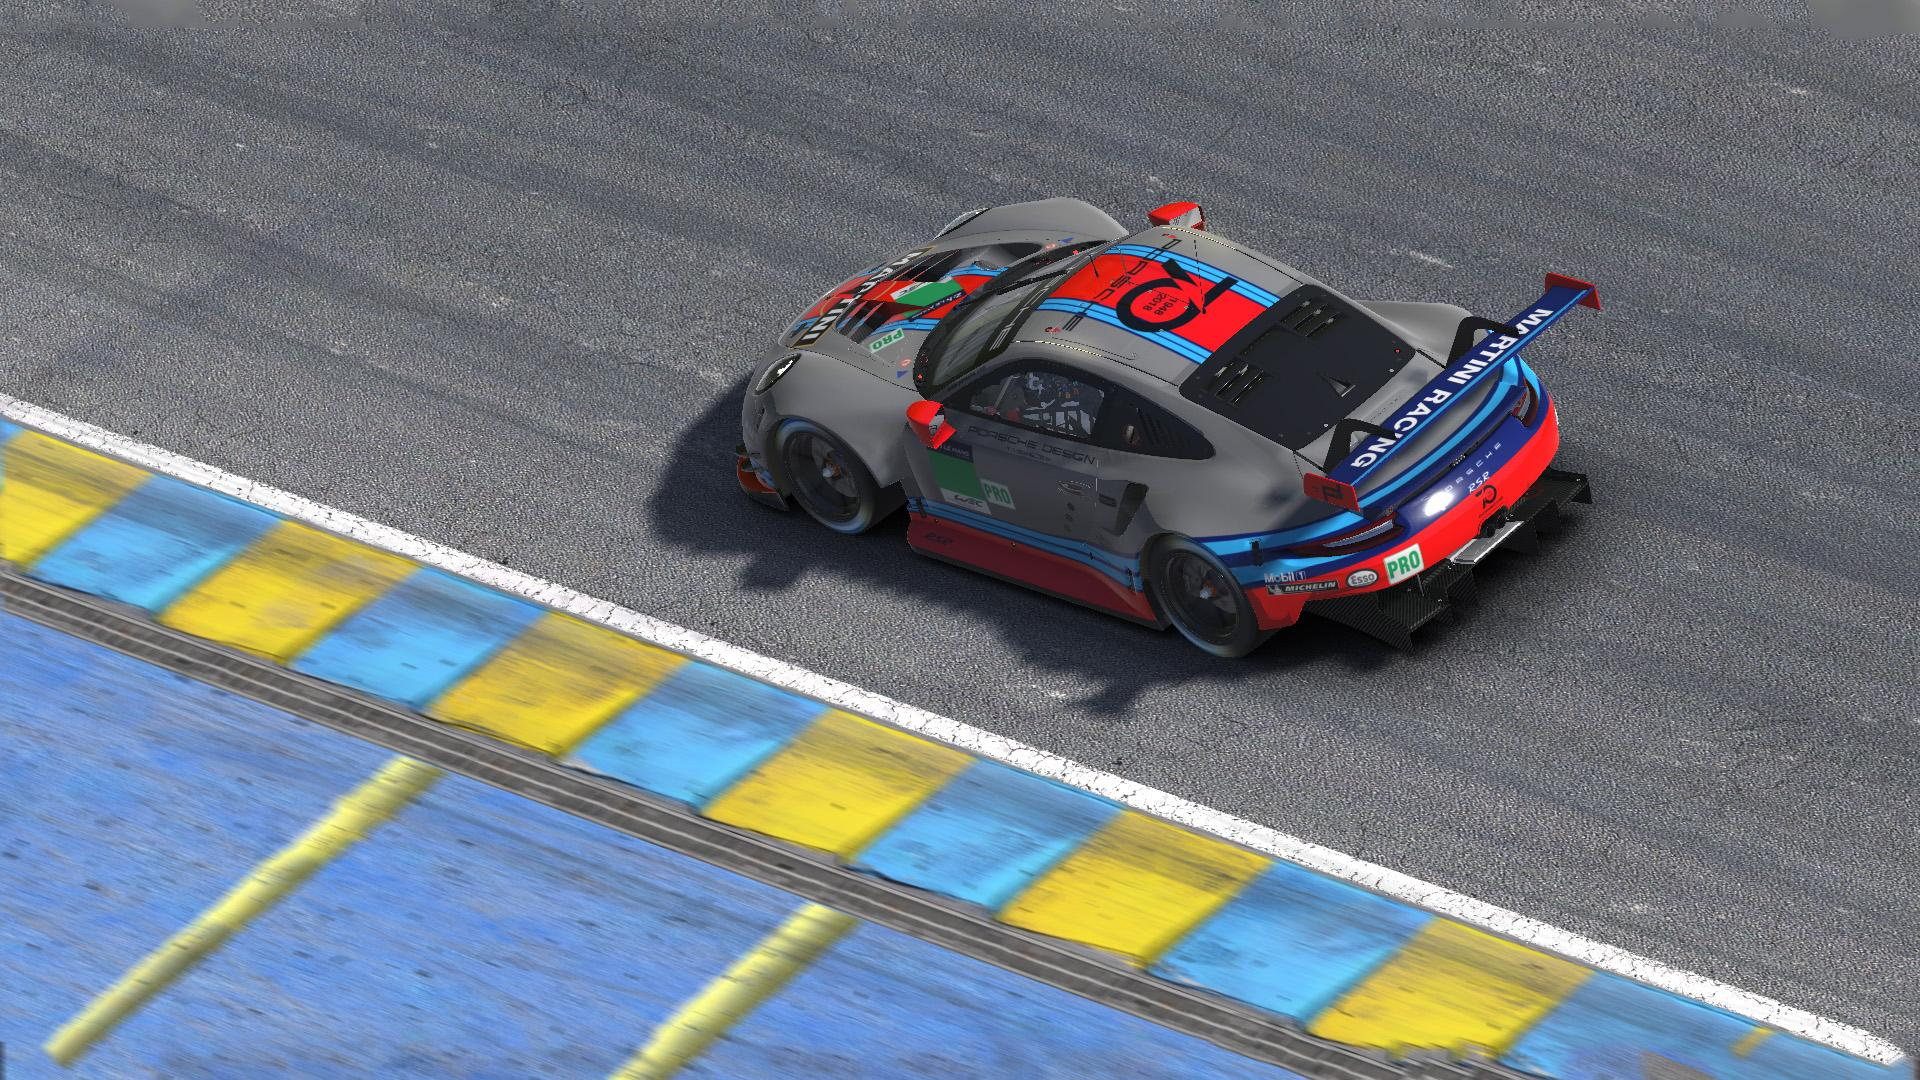 Preview of Manthey Racing Martini Tribute 2018 by Danny Bouwes